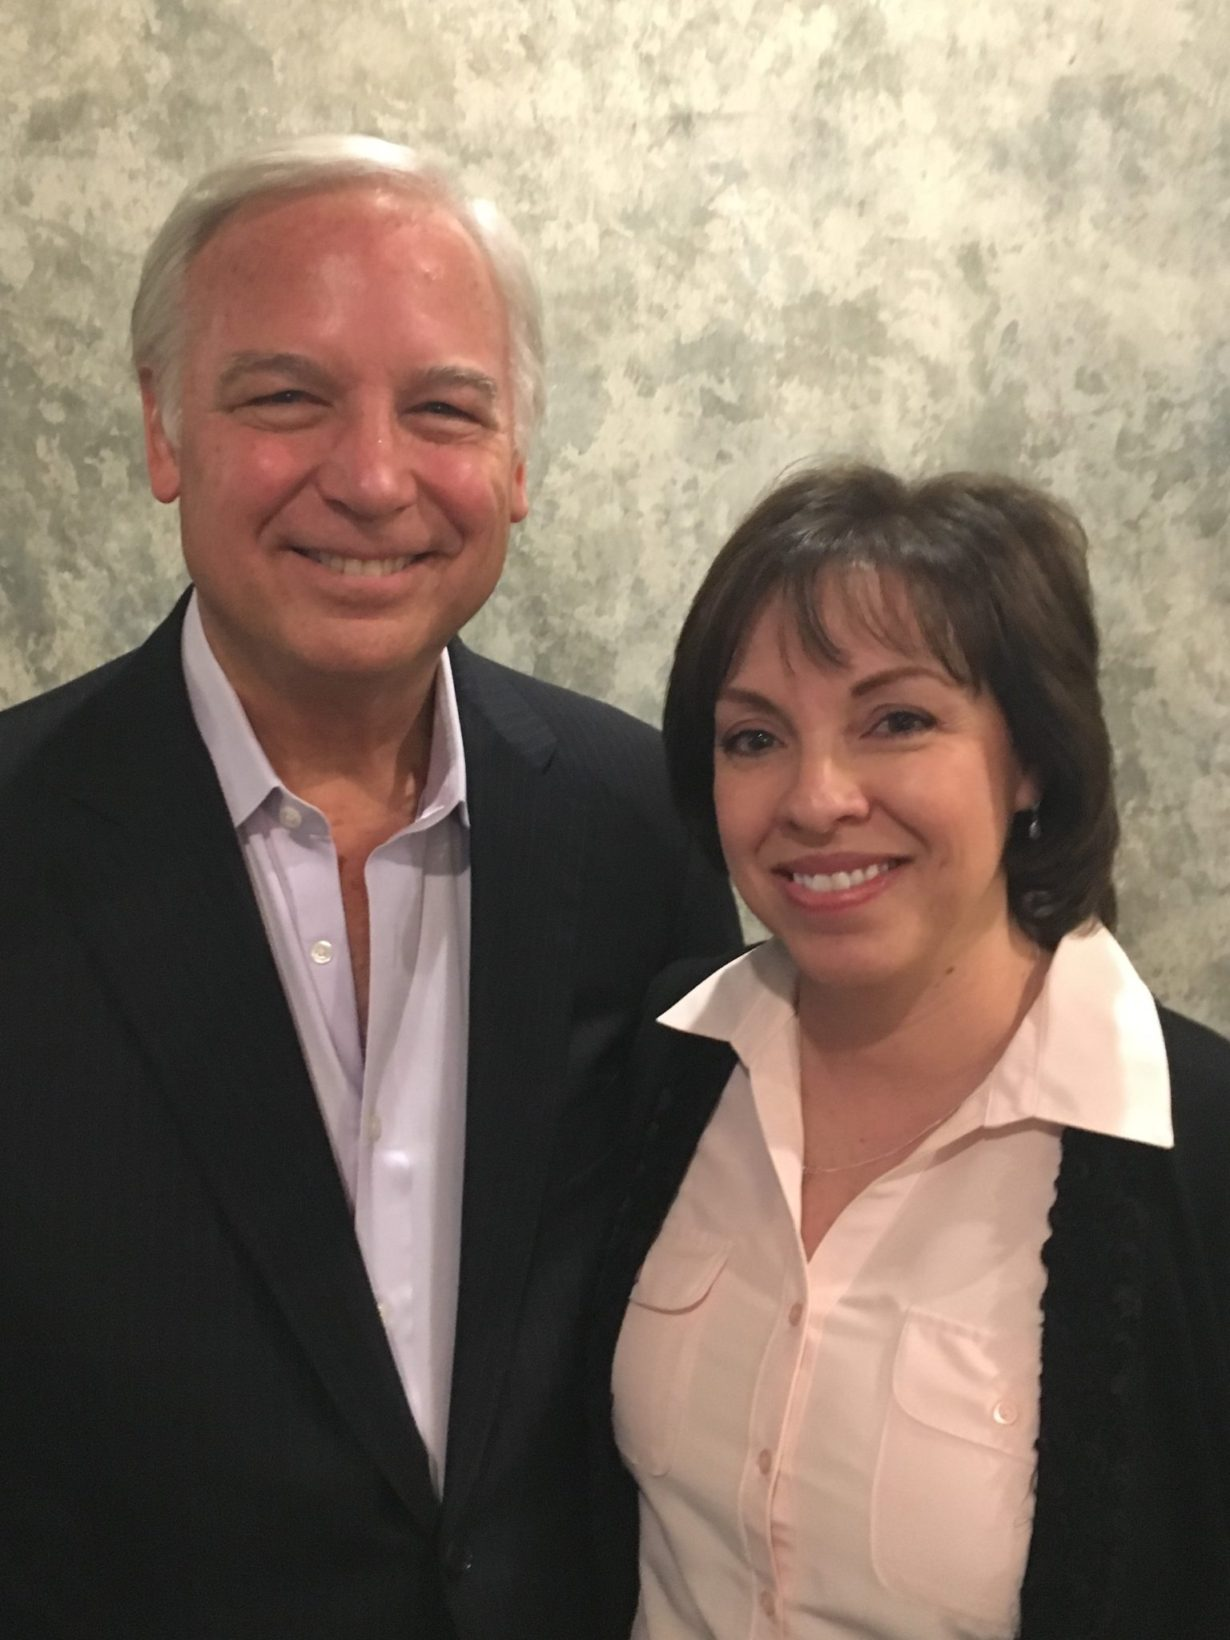 Jack Canfield, Author of Chicken Soup for the Soul Books